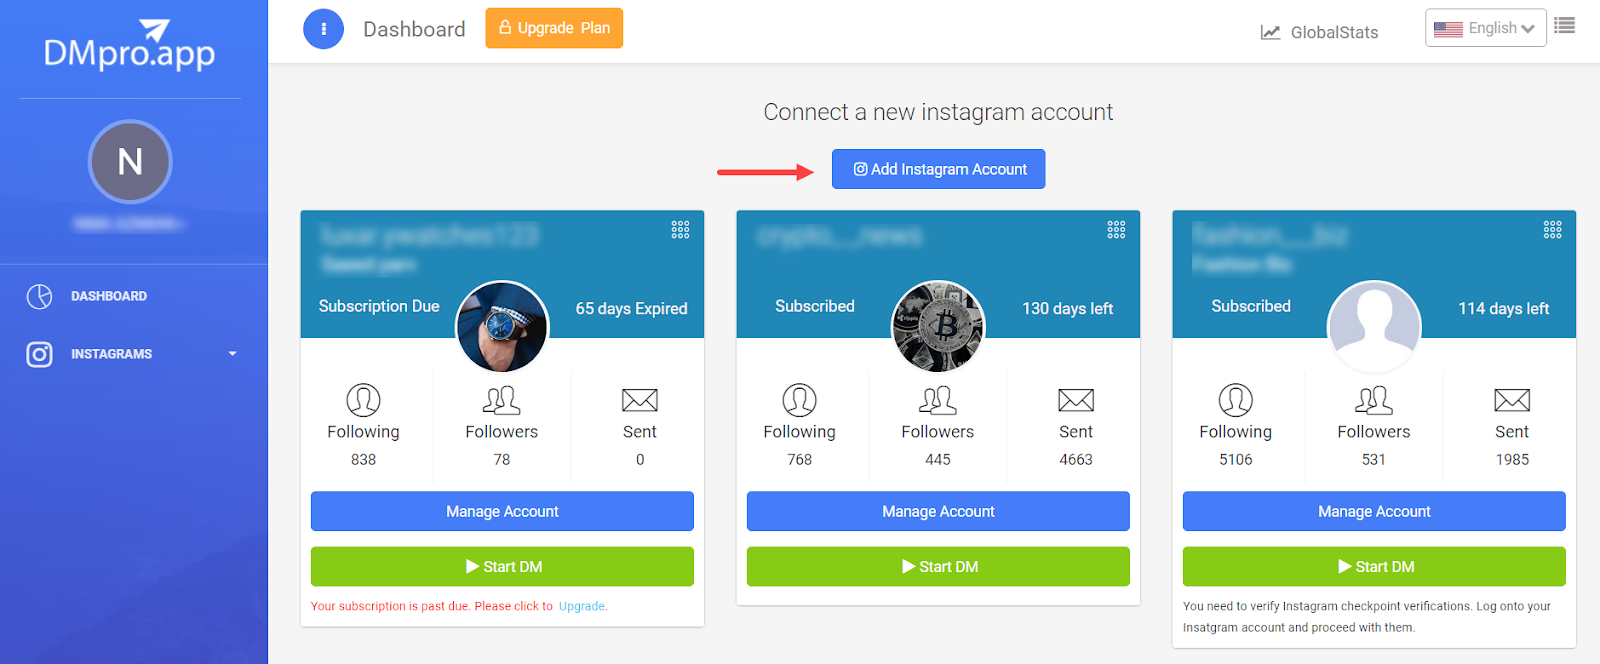 how to see old direct messages on instagram